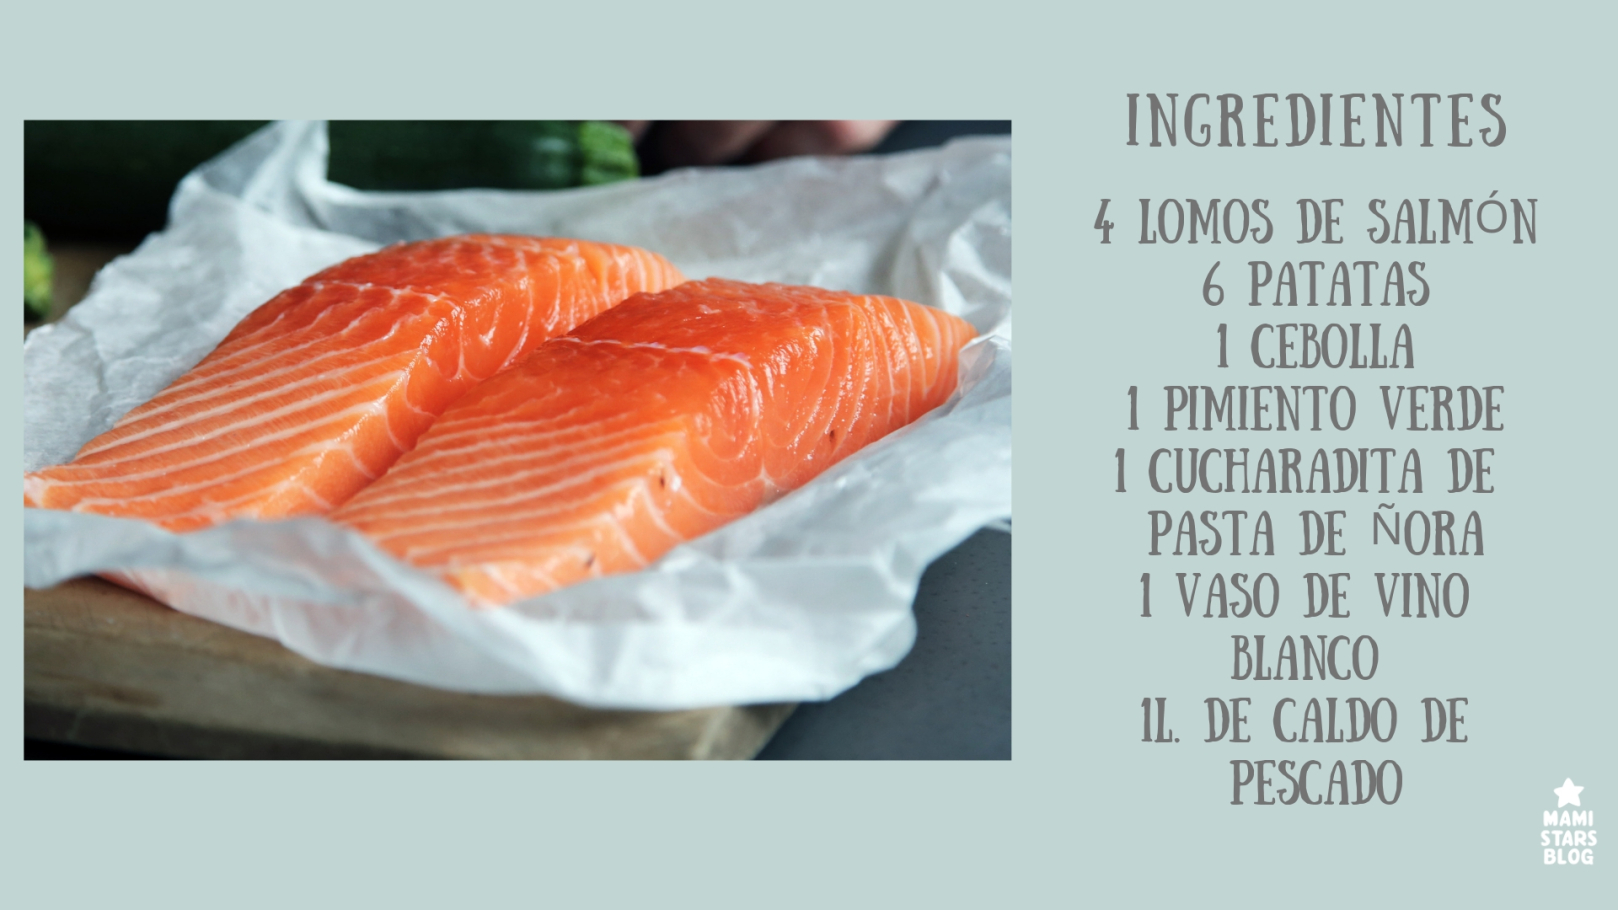 INGREDIENTES RECETA MARMITAKO SALMON